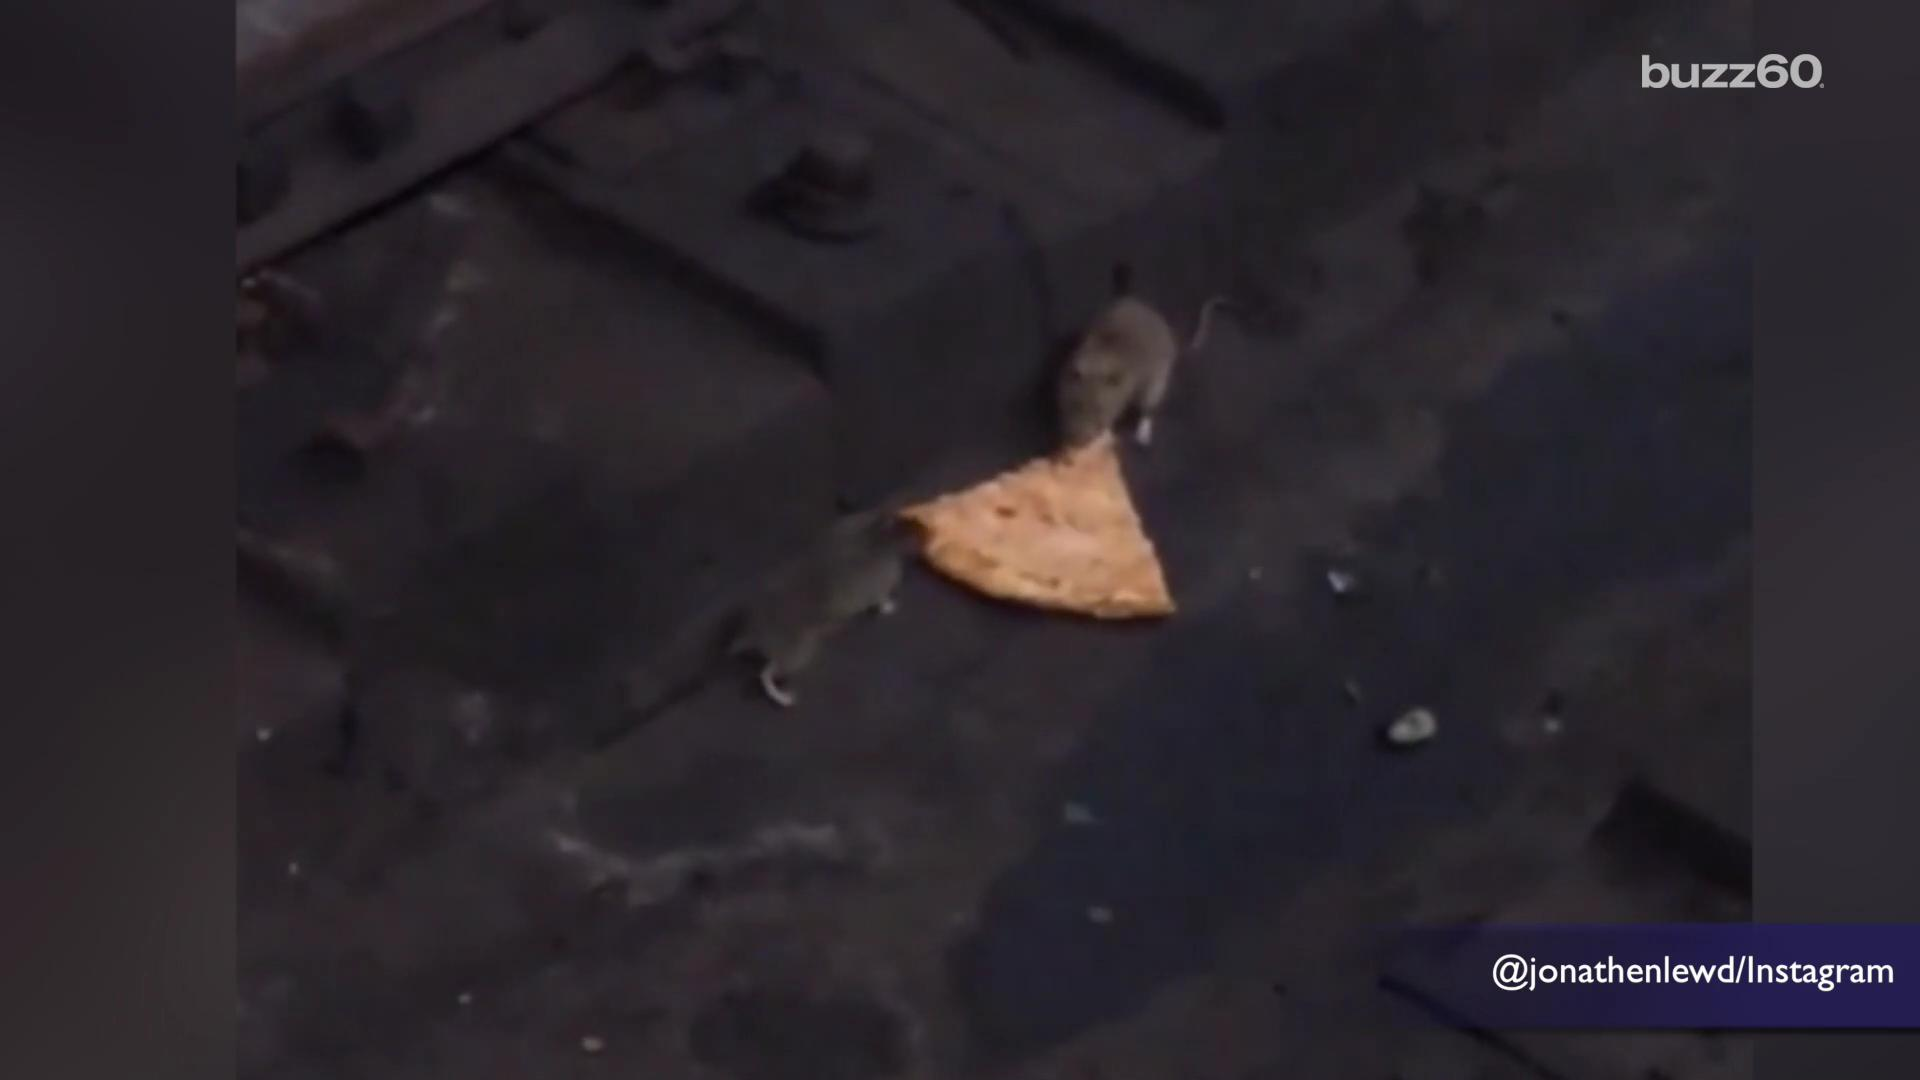 Pizza rat returns with video of 2 rats fighting over a slice